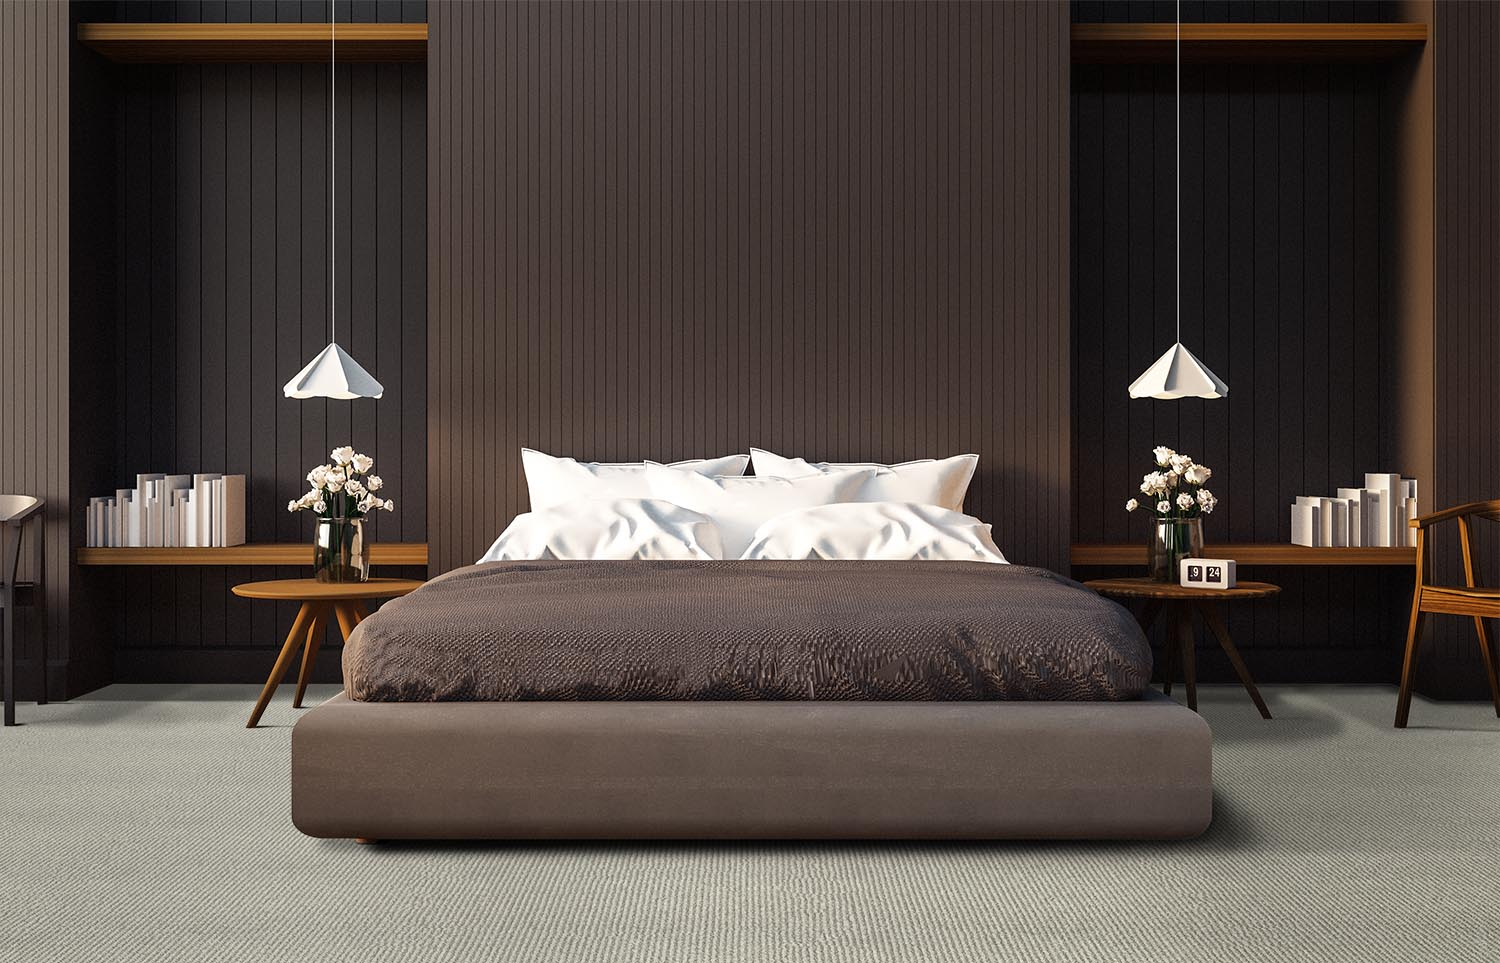 Mindful - Accept contemporary bedroom